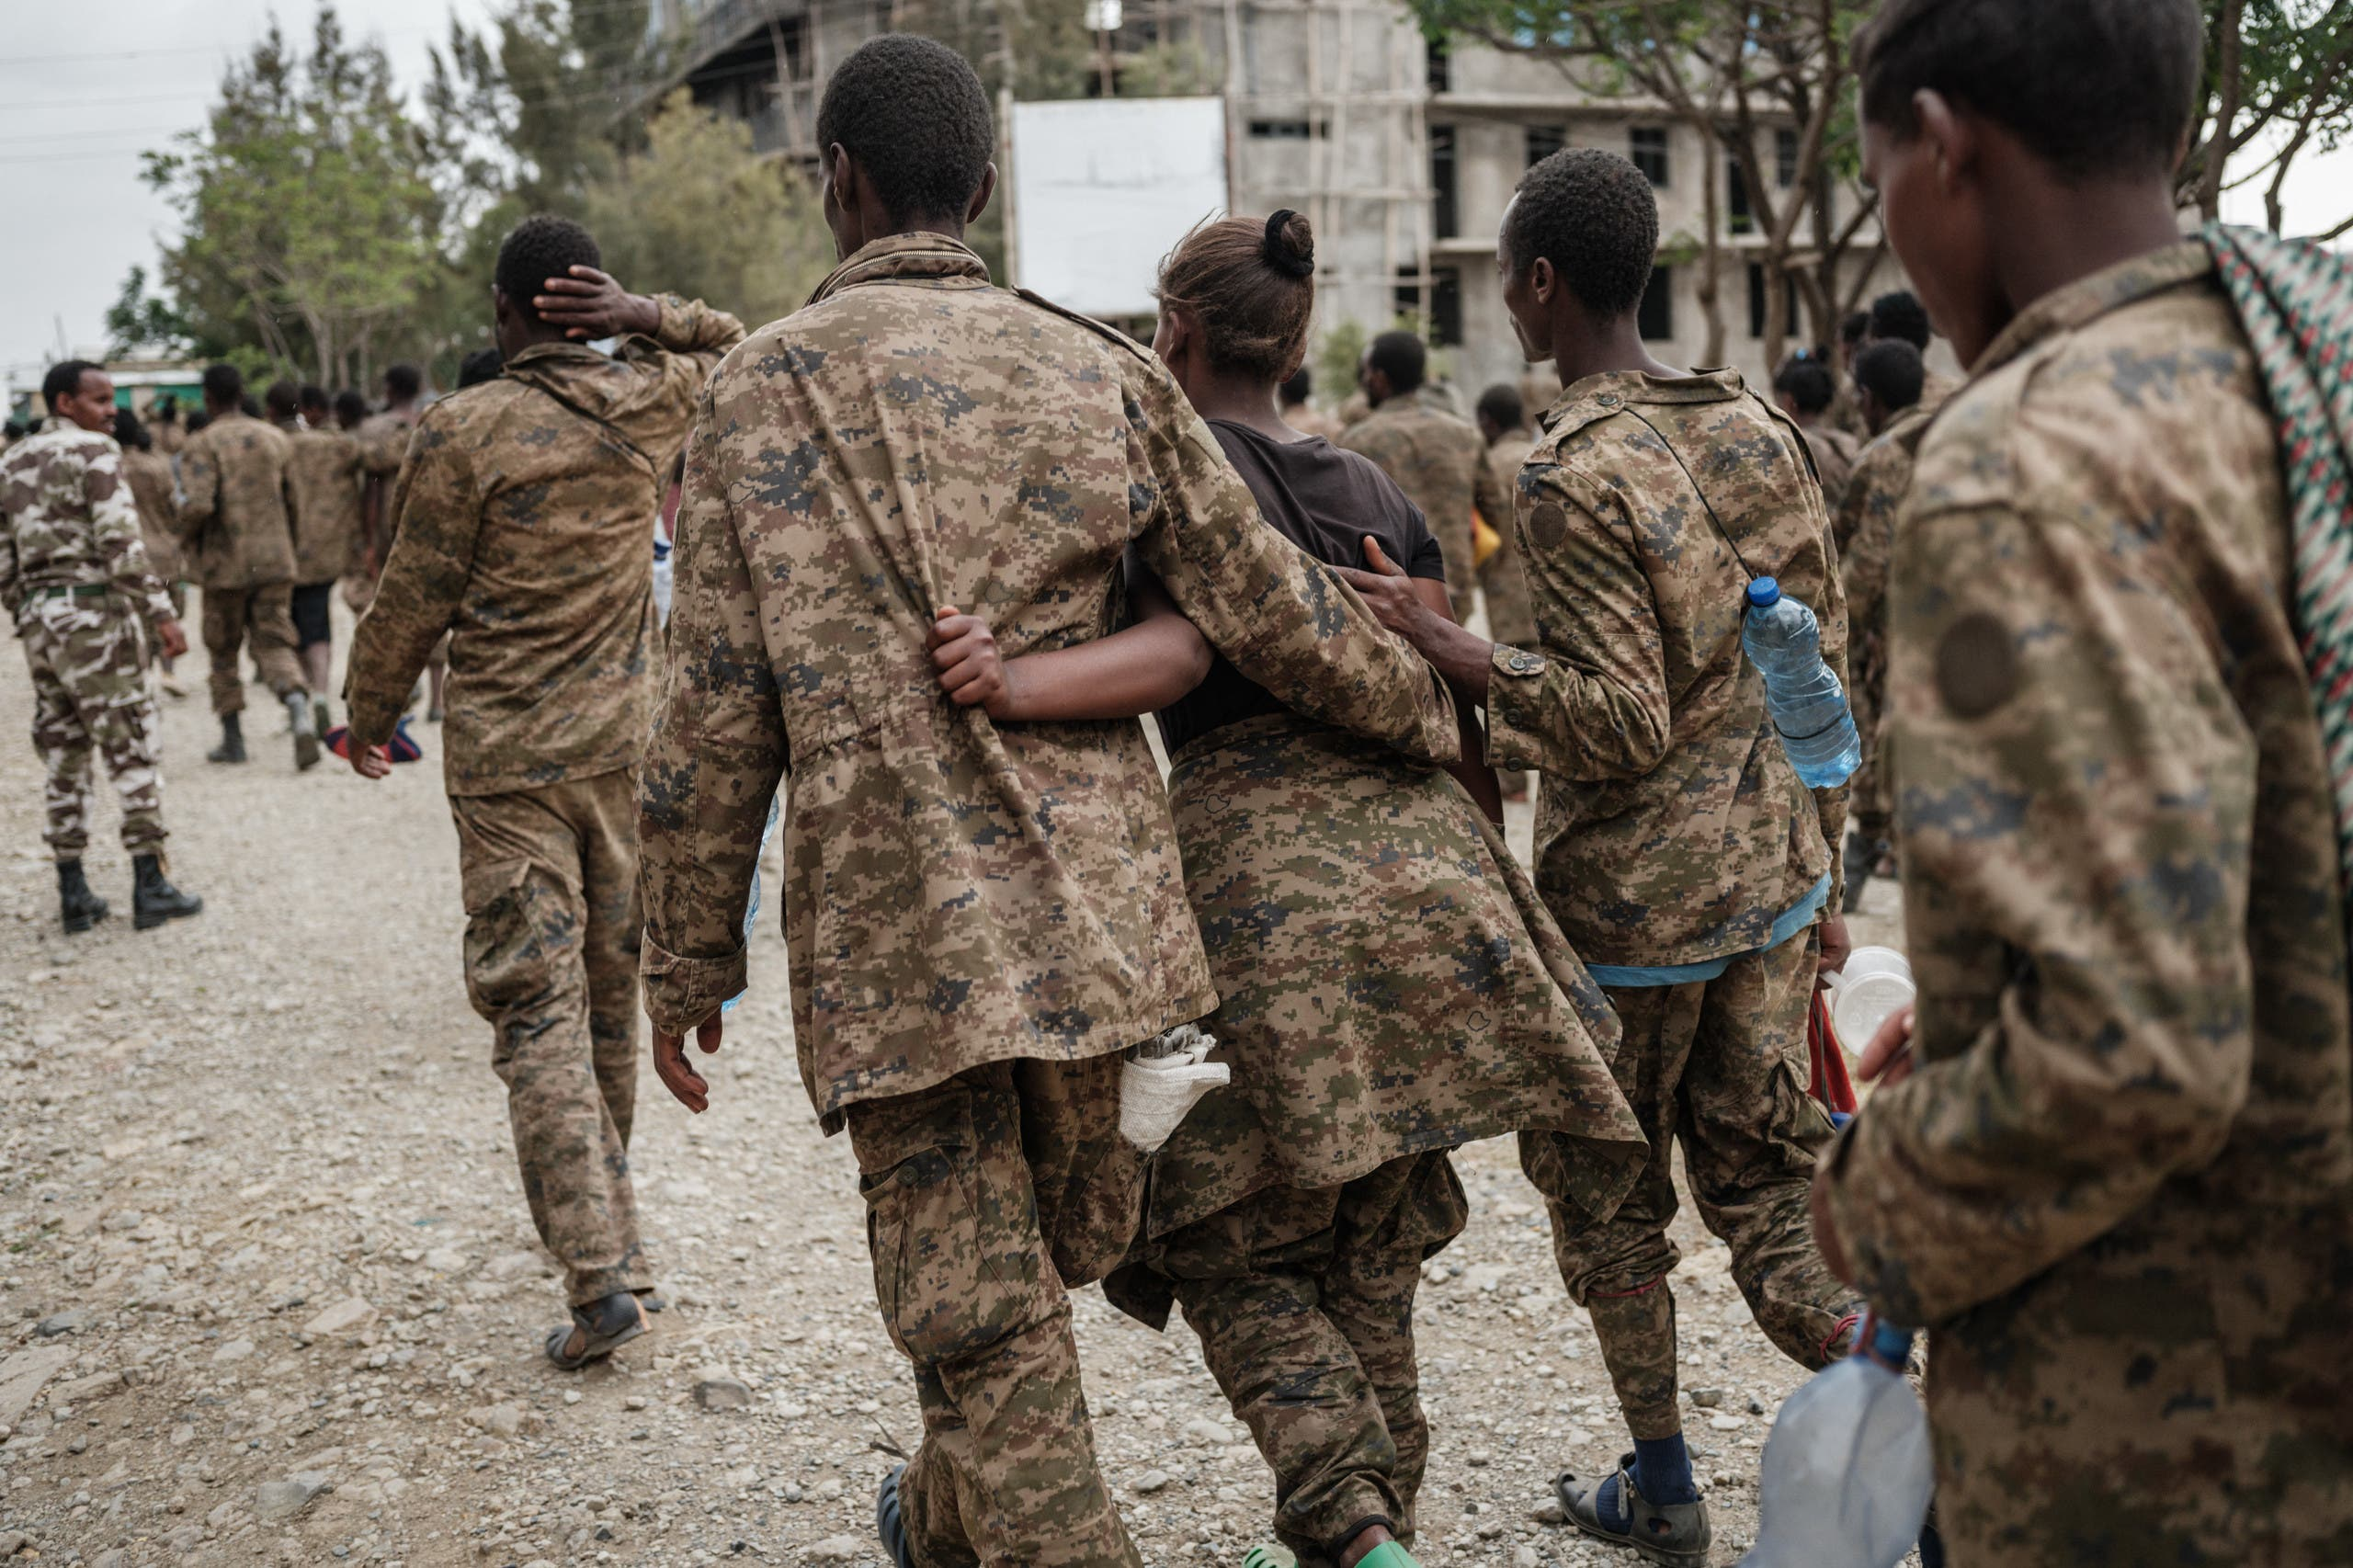 Ethiopian Federal Army soldiers captured by the Tigray Liberation Front during battles (archive)